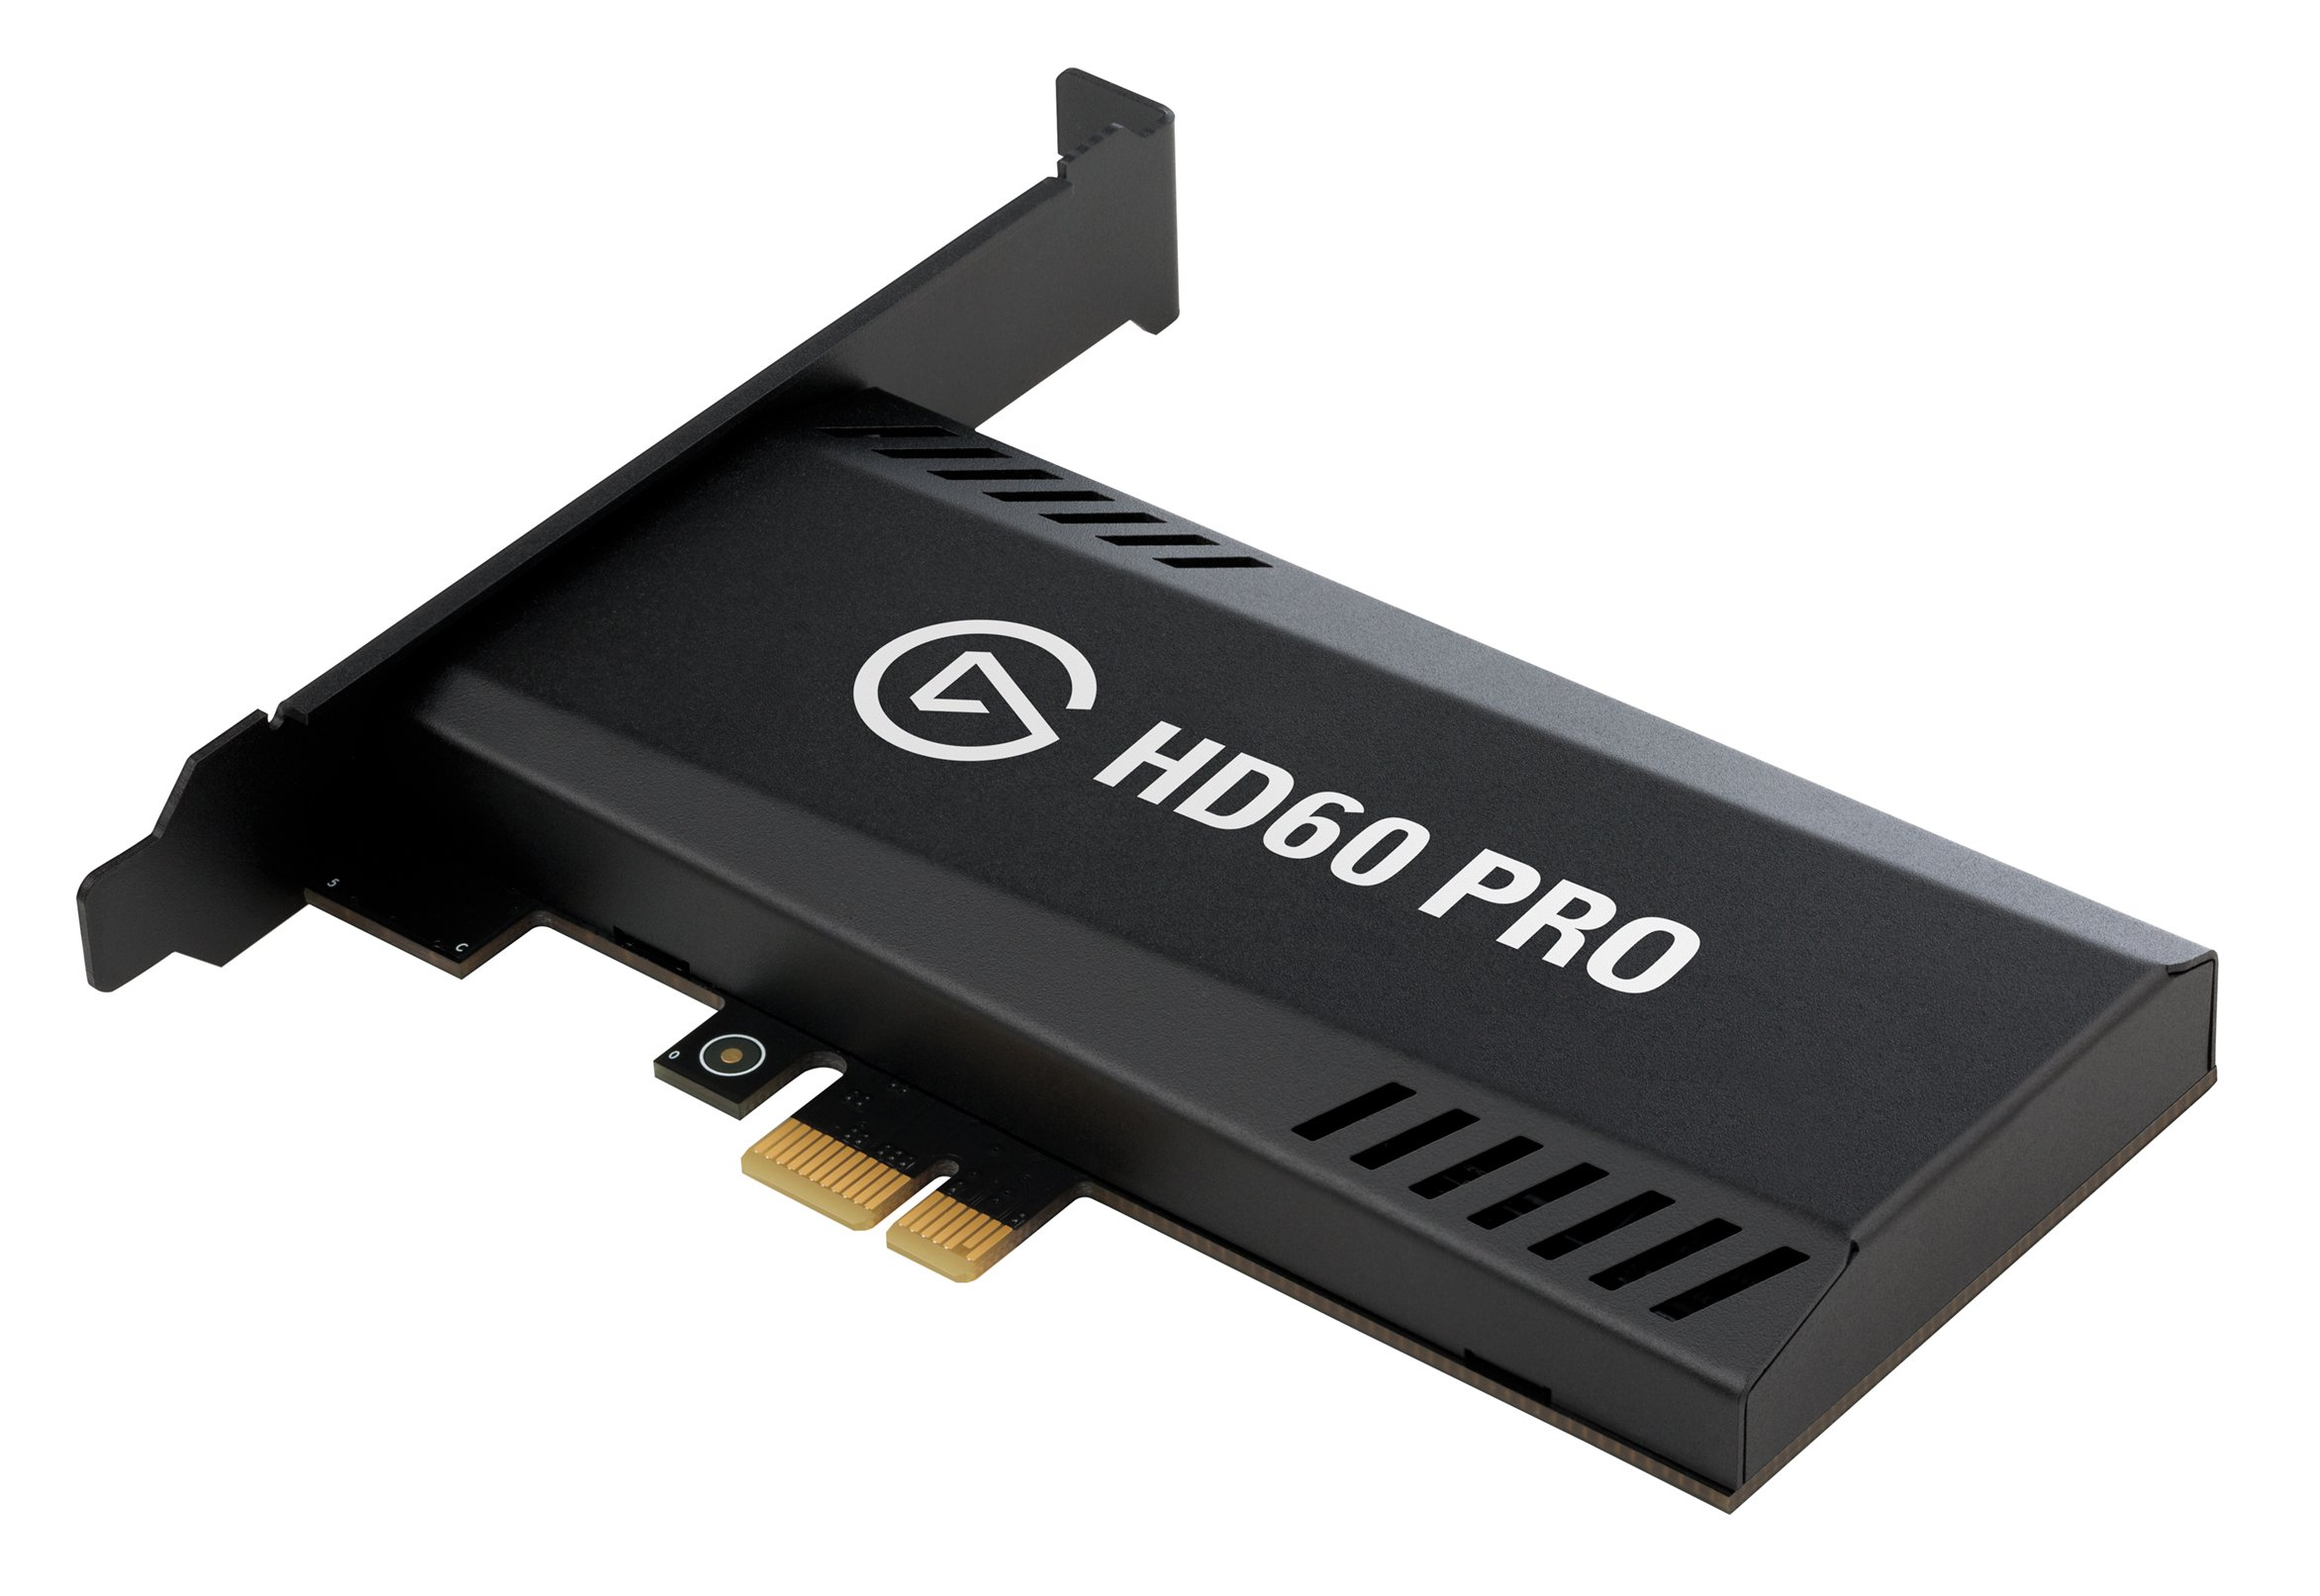 Elgato Game Capture HD60 Pro - Stream and record in 1080p60, superior low latency technology, H.264 hardware encoding, PCIe by Corsair